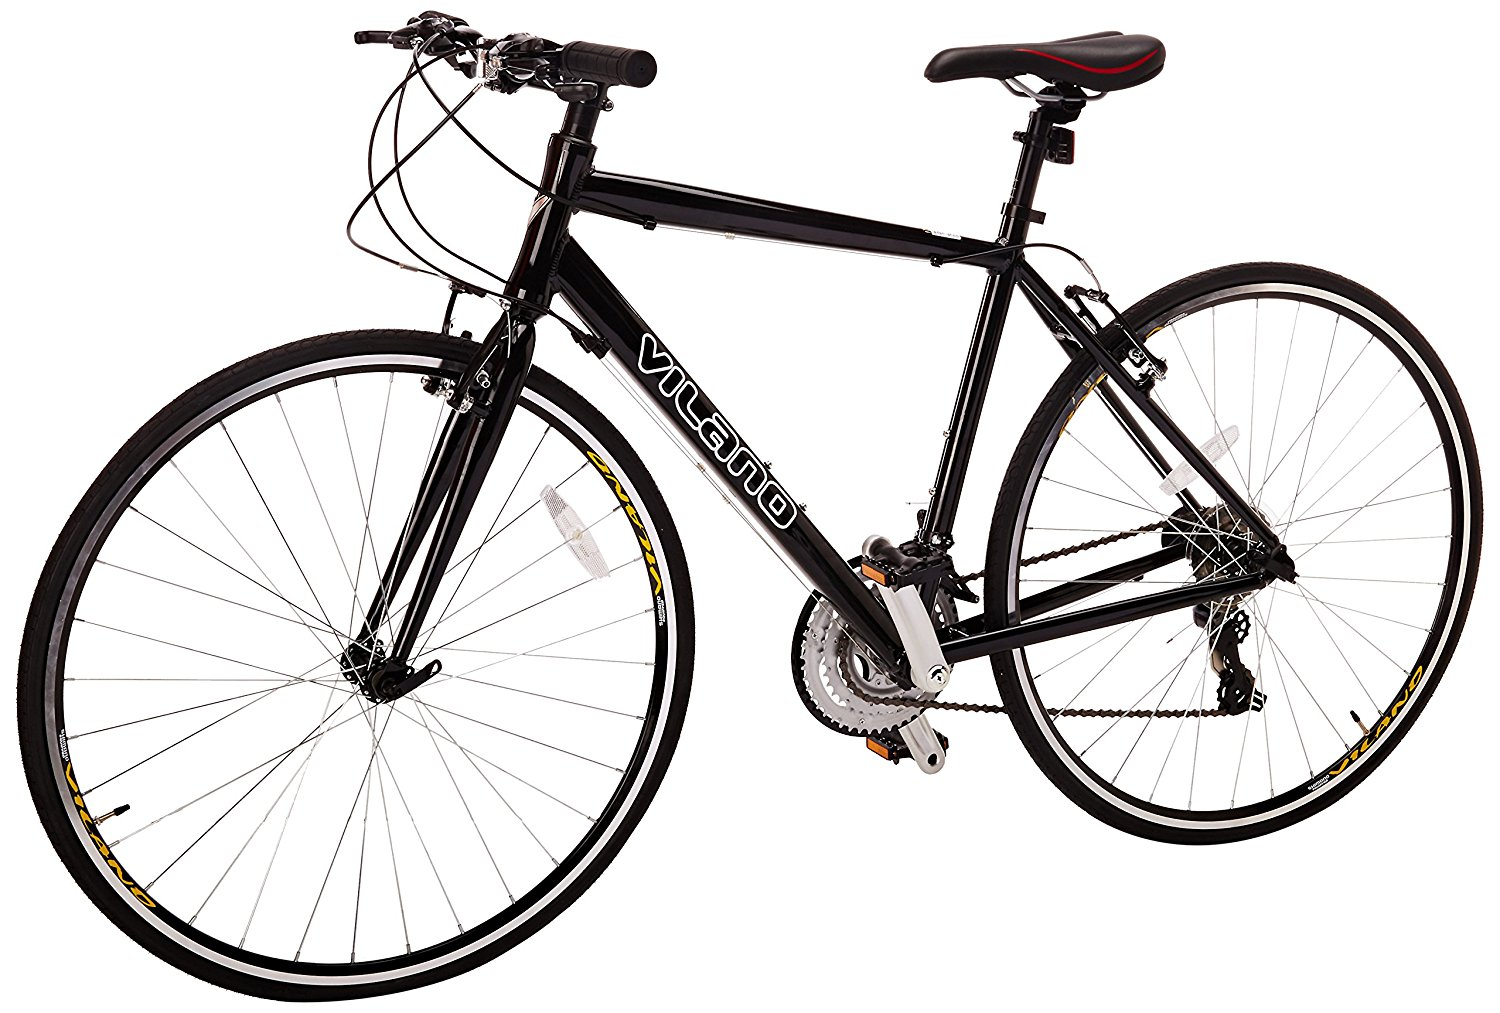 Buy Vilano Tuono Performance Hybrid Flat Bar Commuter Road Bike ...